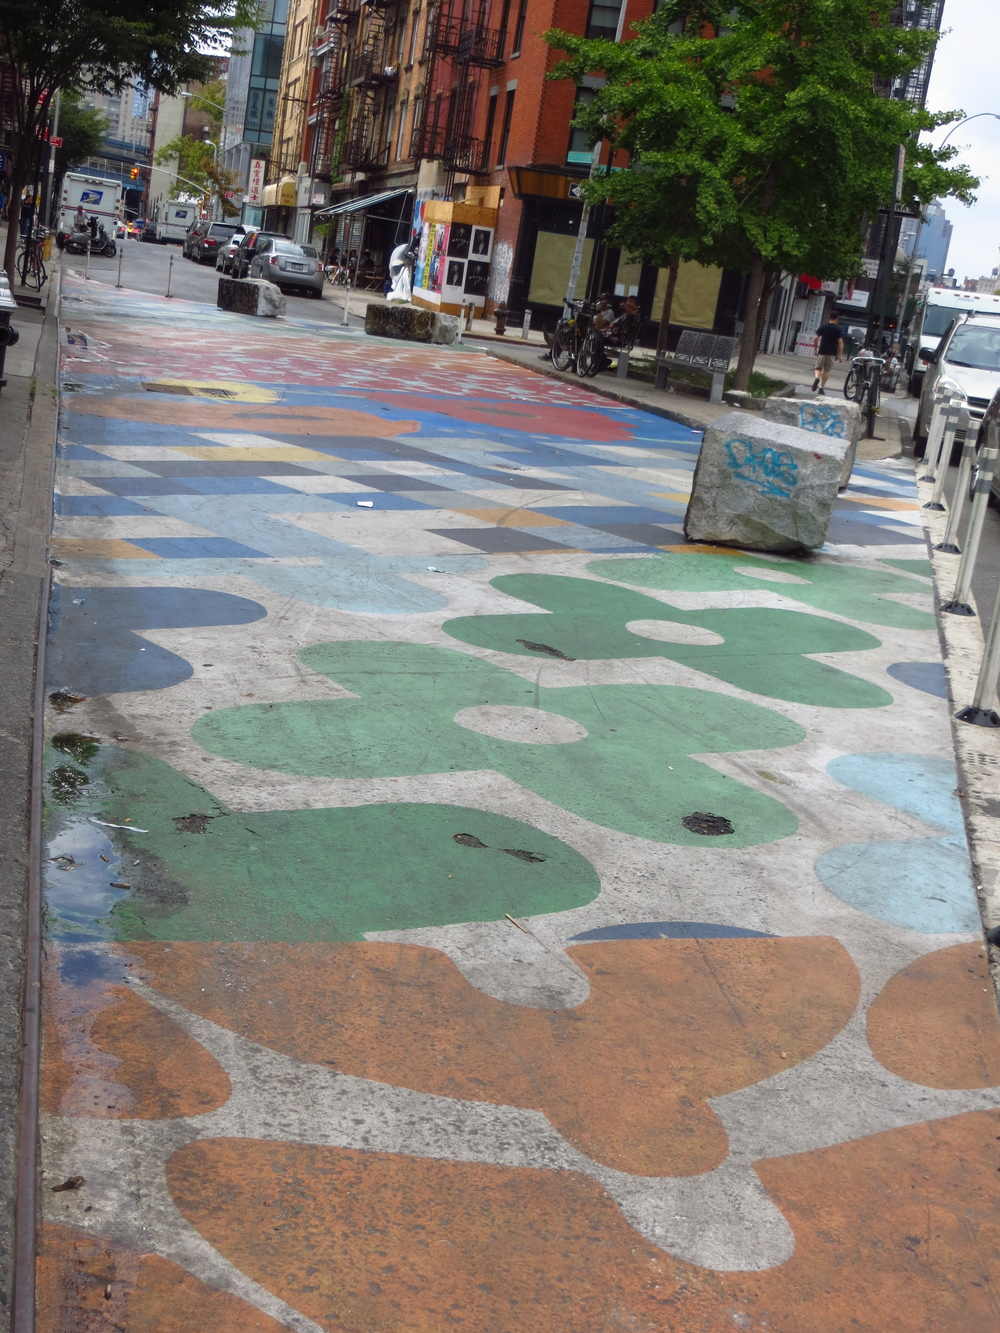 Painted street